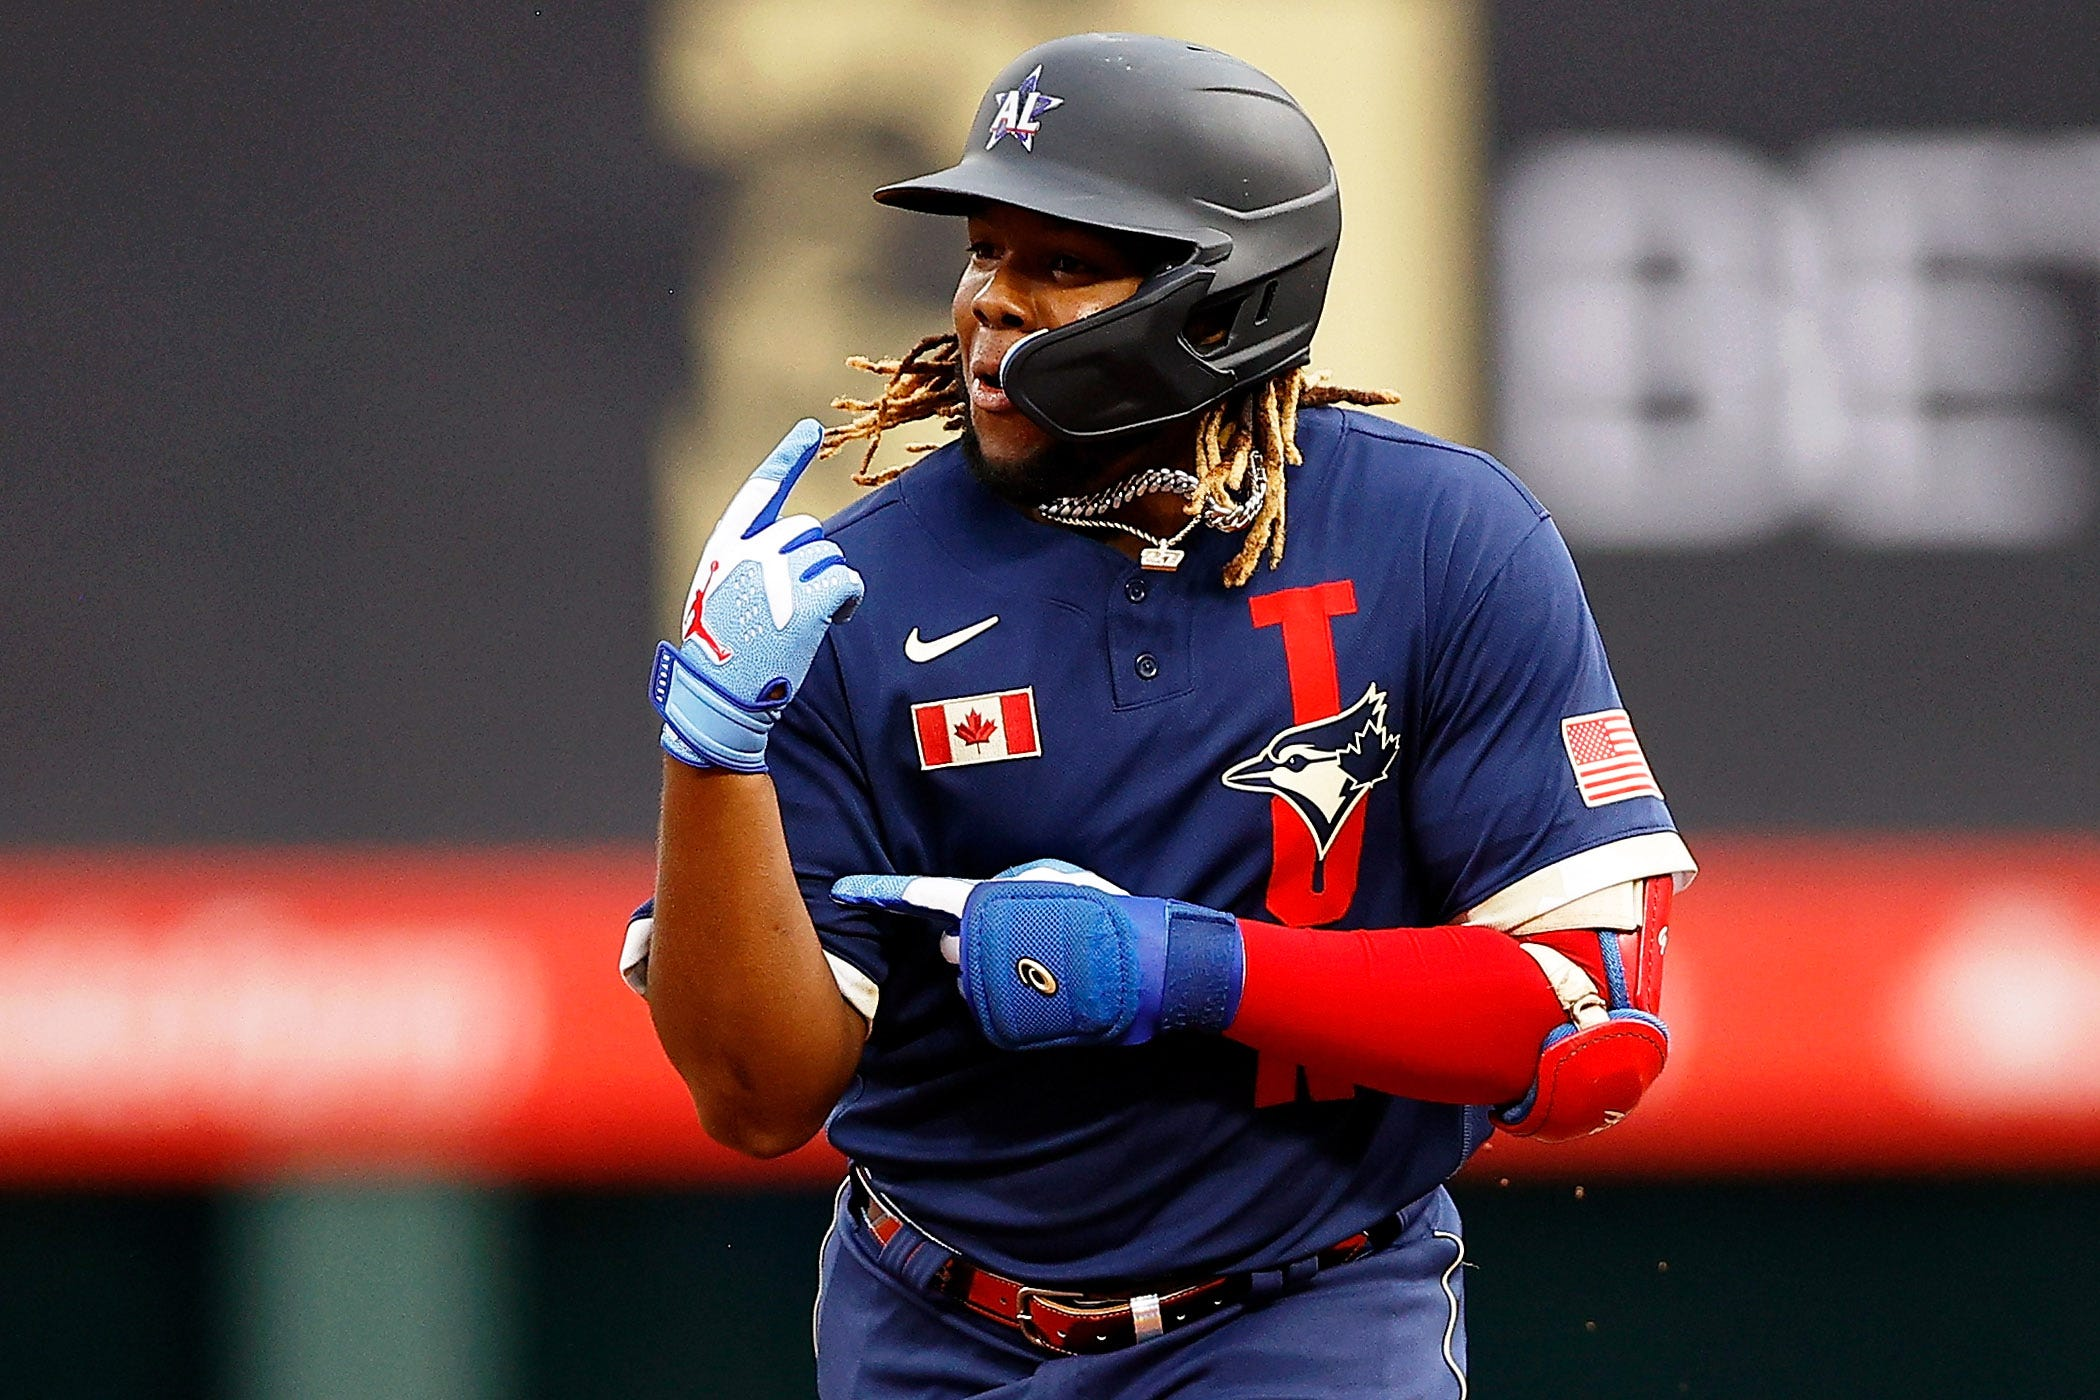 2021 MLB All-Star Game live updates: Vladimir Guerrero Jr. launches monster home run as American League leads